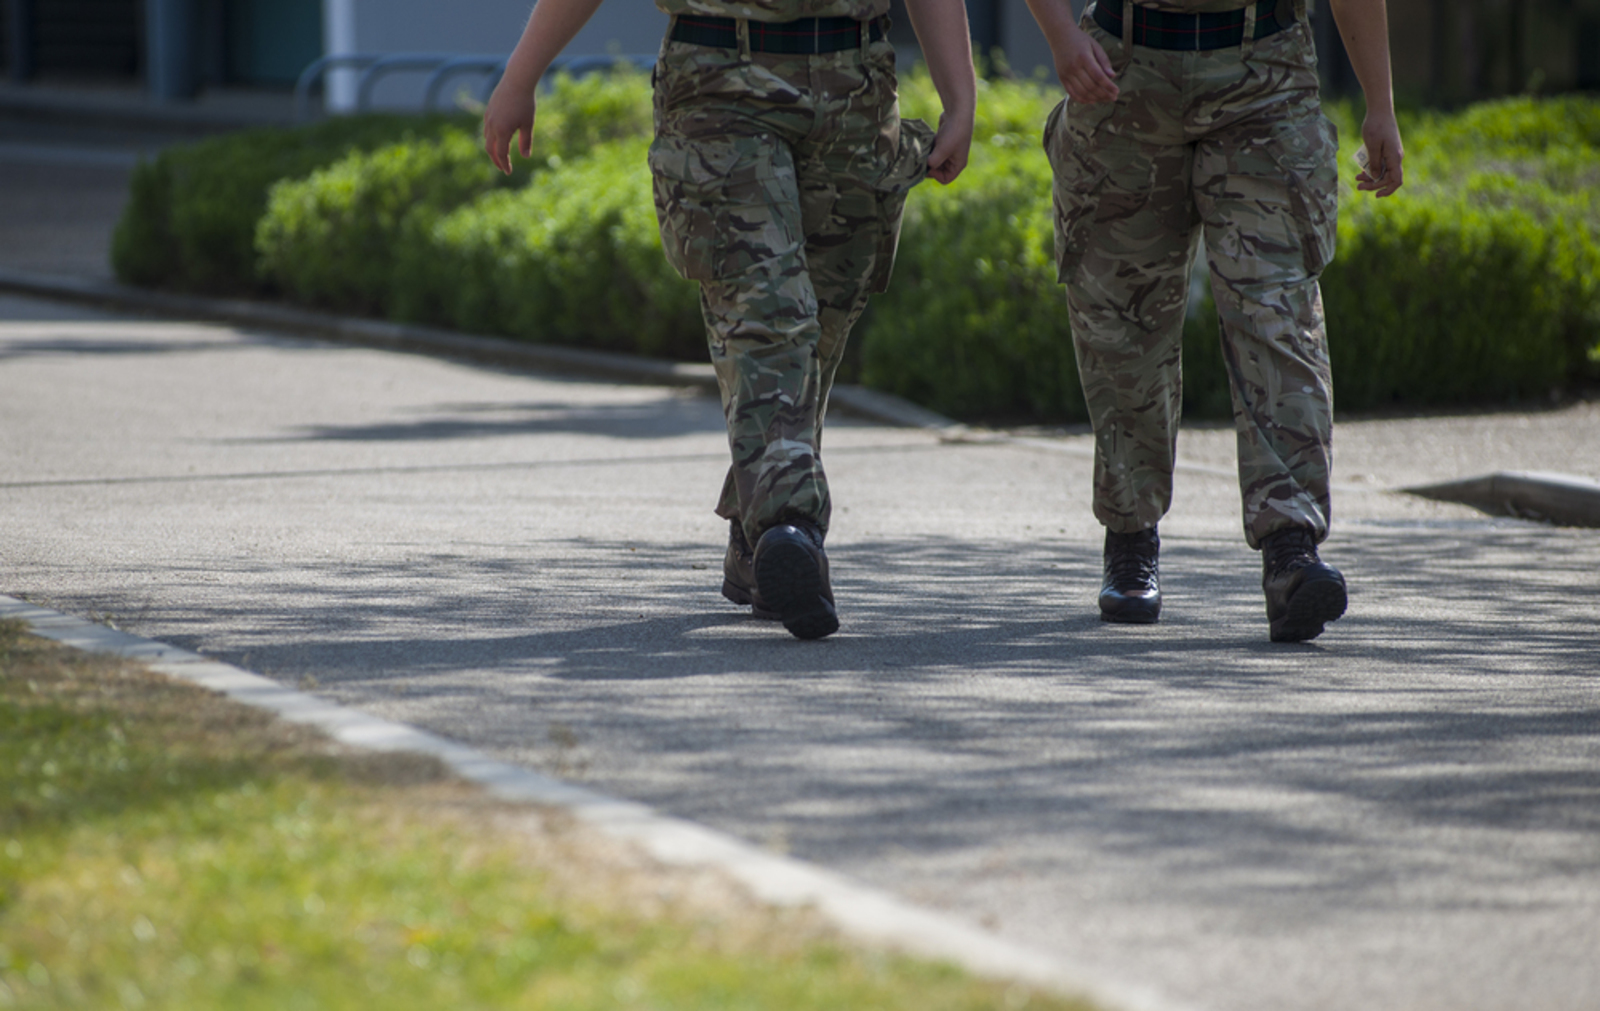 Soldiers walking